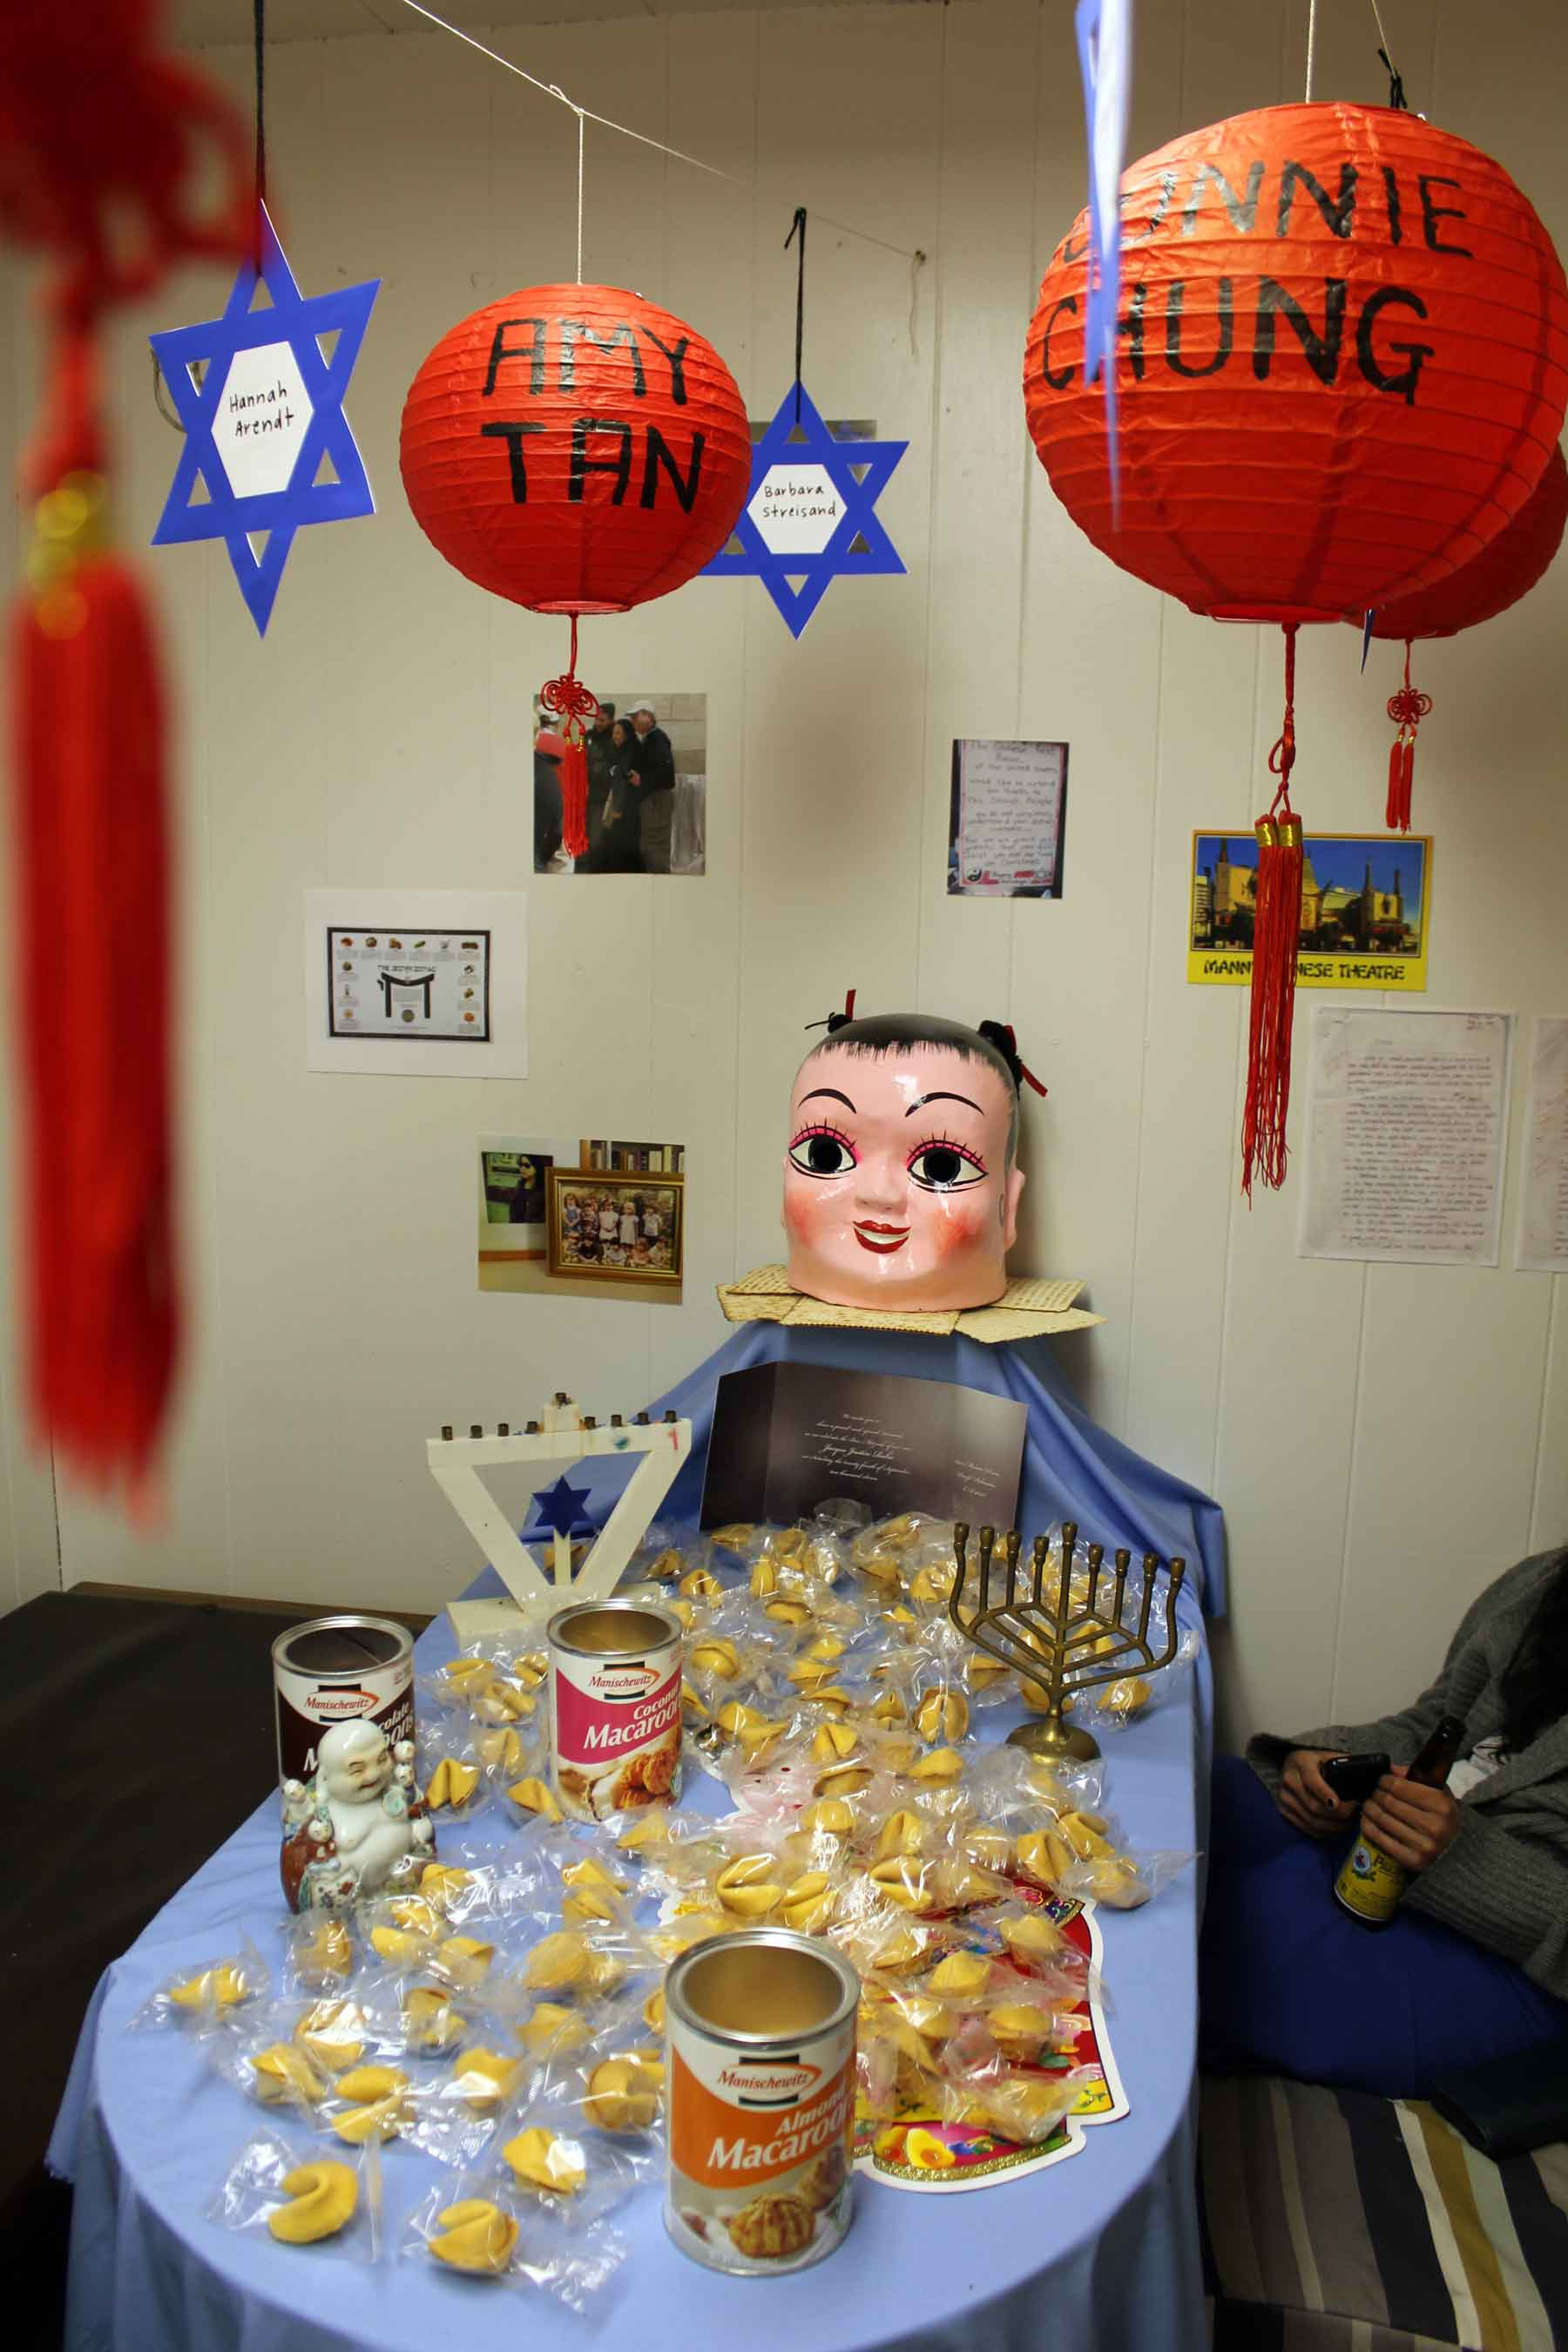 Chan &amp; Mann, Asian-Jew Tablescape, installation of Asian-Jew misfortune cookies, decorations from Chinatown, menorahs, Buddha, incense, inkjet prints of images from the Internet and personal photographs, found Bar Mitzvah announcement, painted paper lanterns, Jewish stars of fame, 2012. Photo: Audrey Chan.